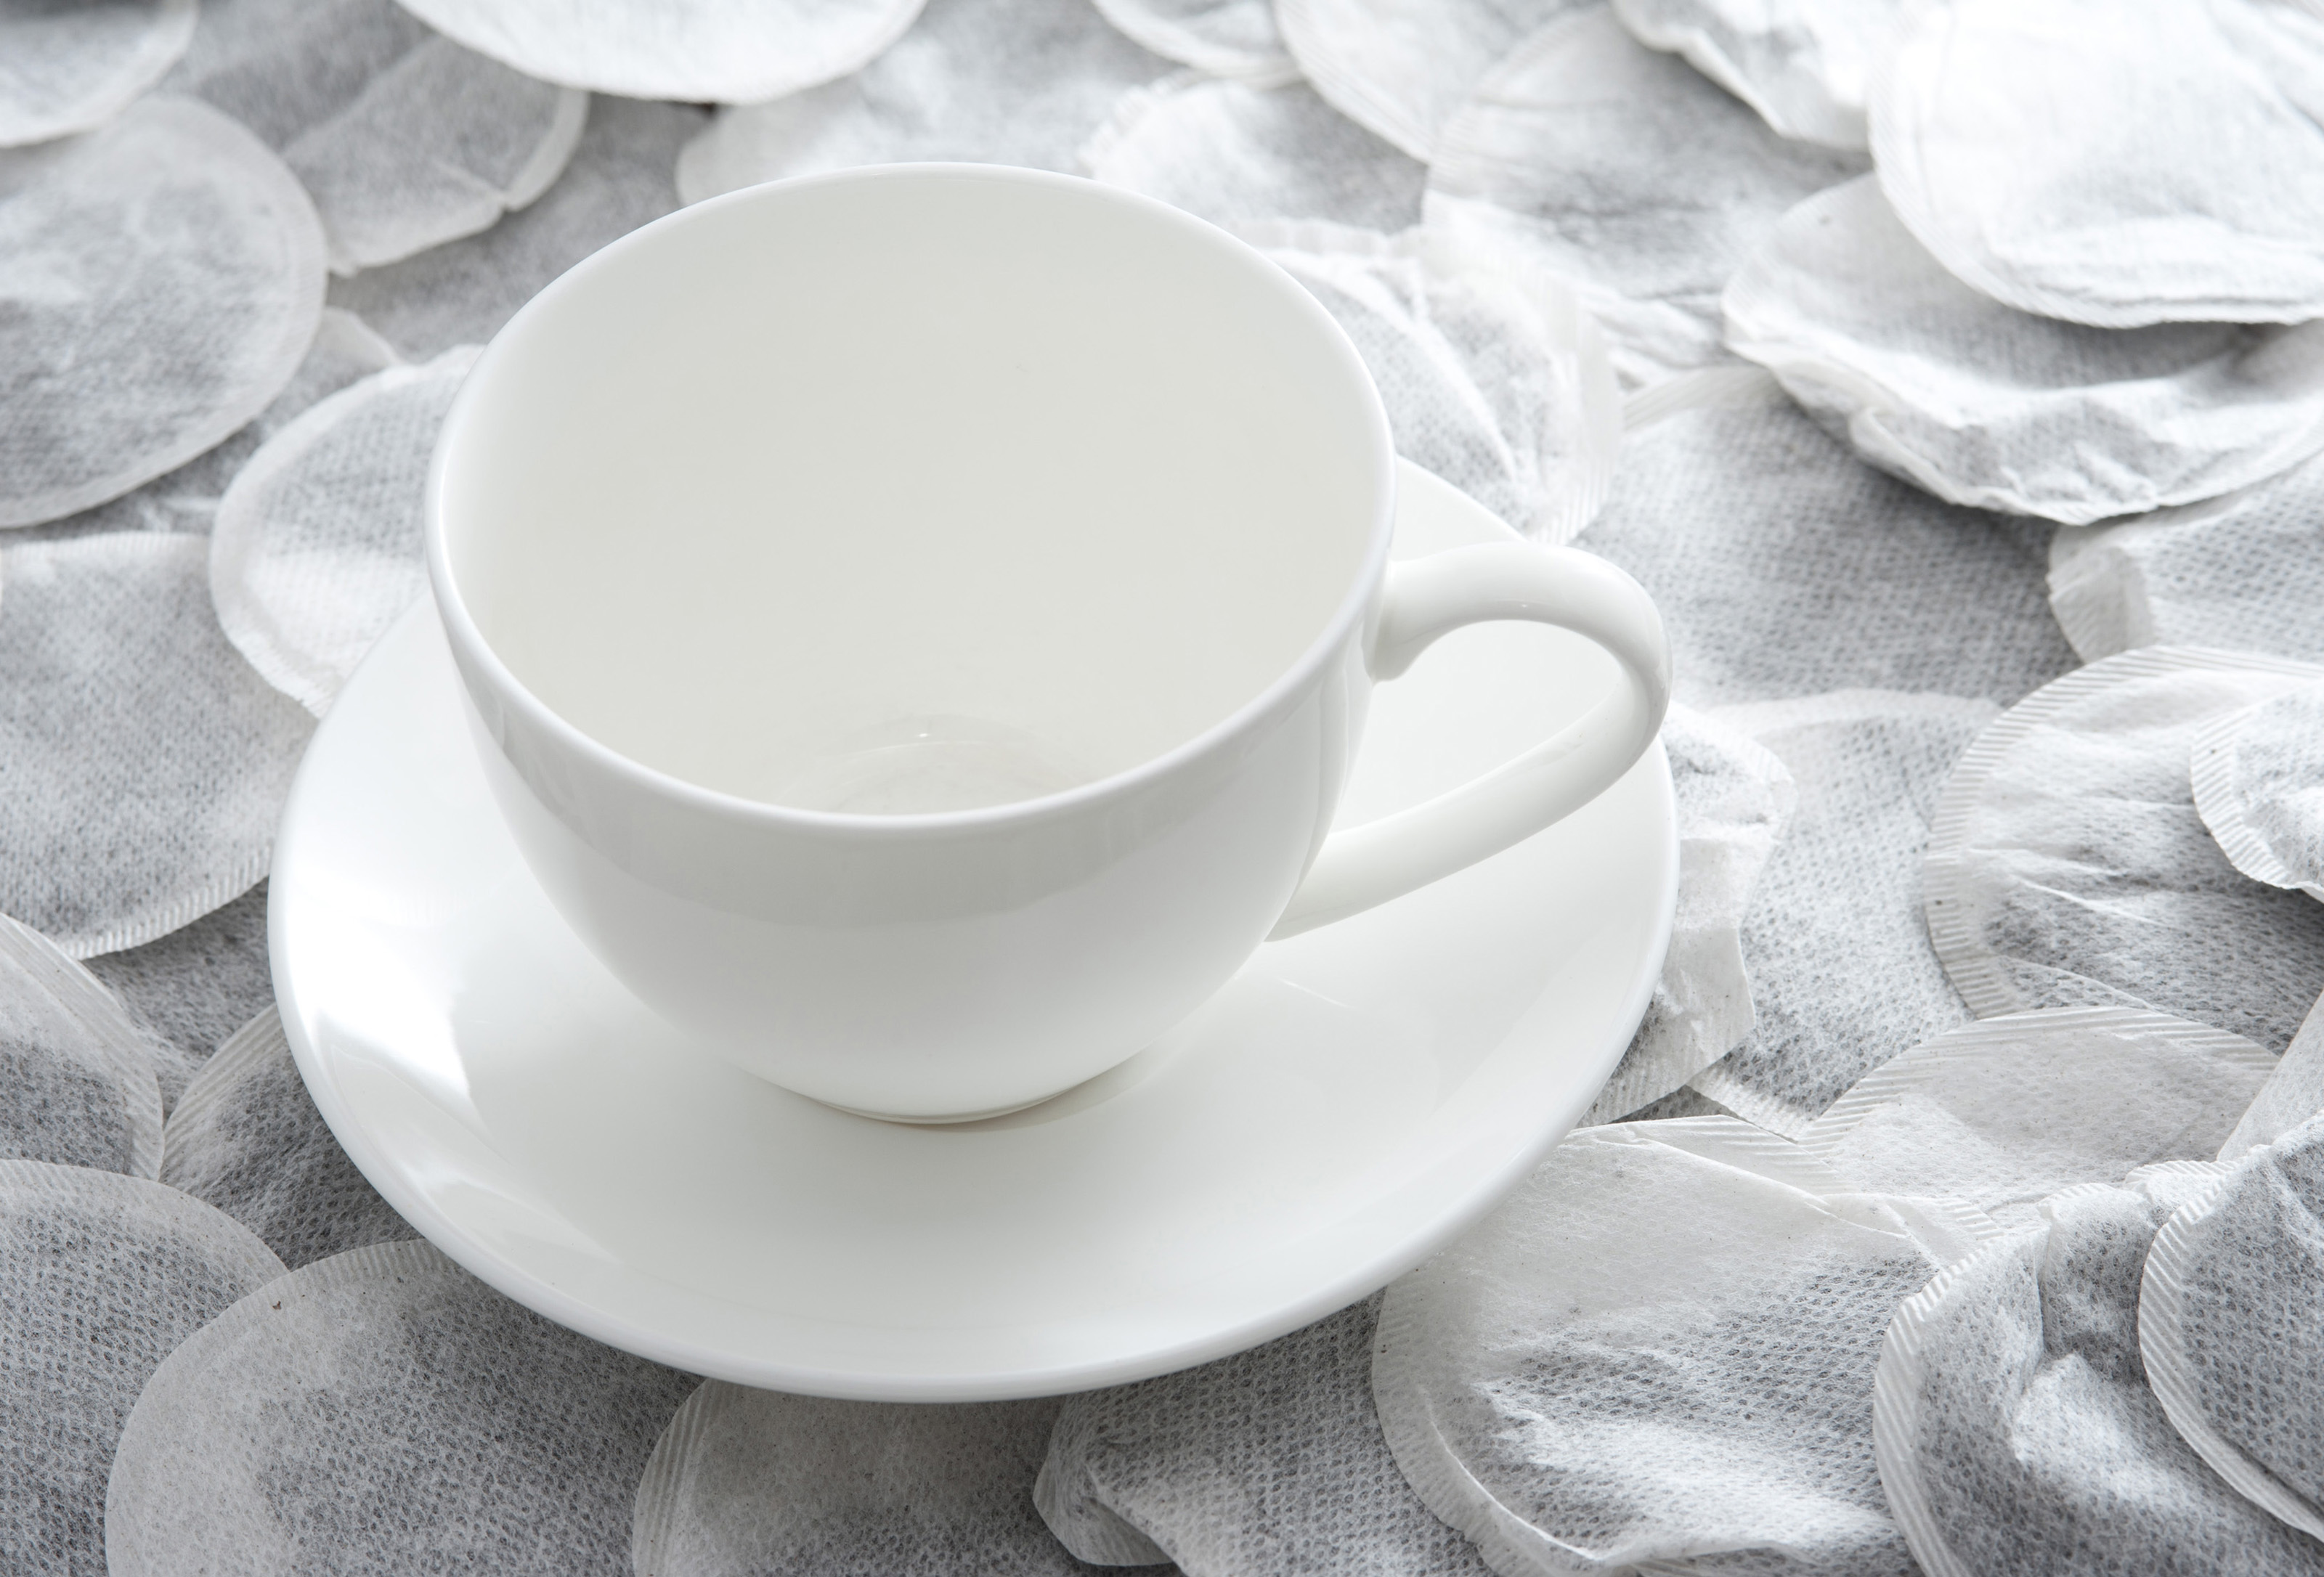 Empty teacup and teabags-8130   Stockarch Free Stock Photos